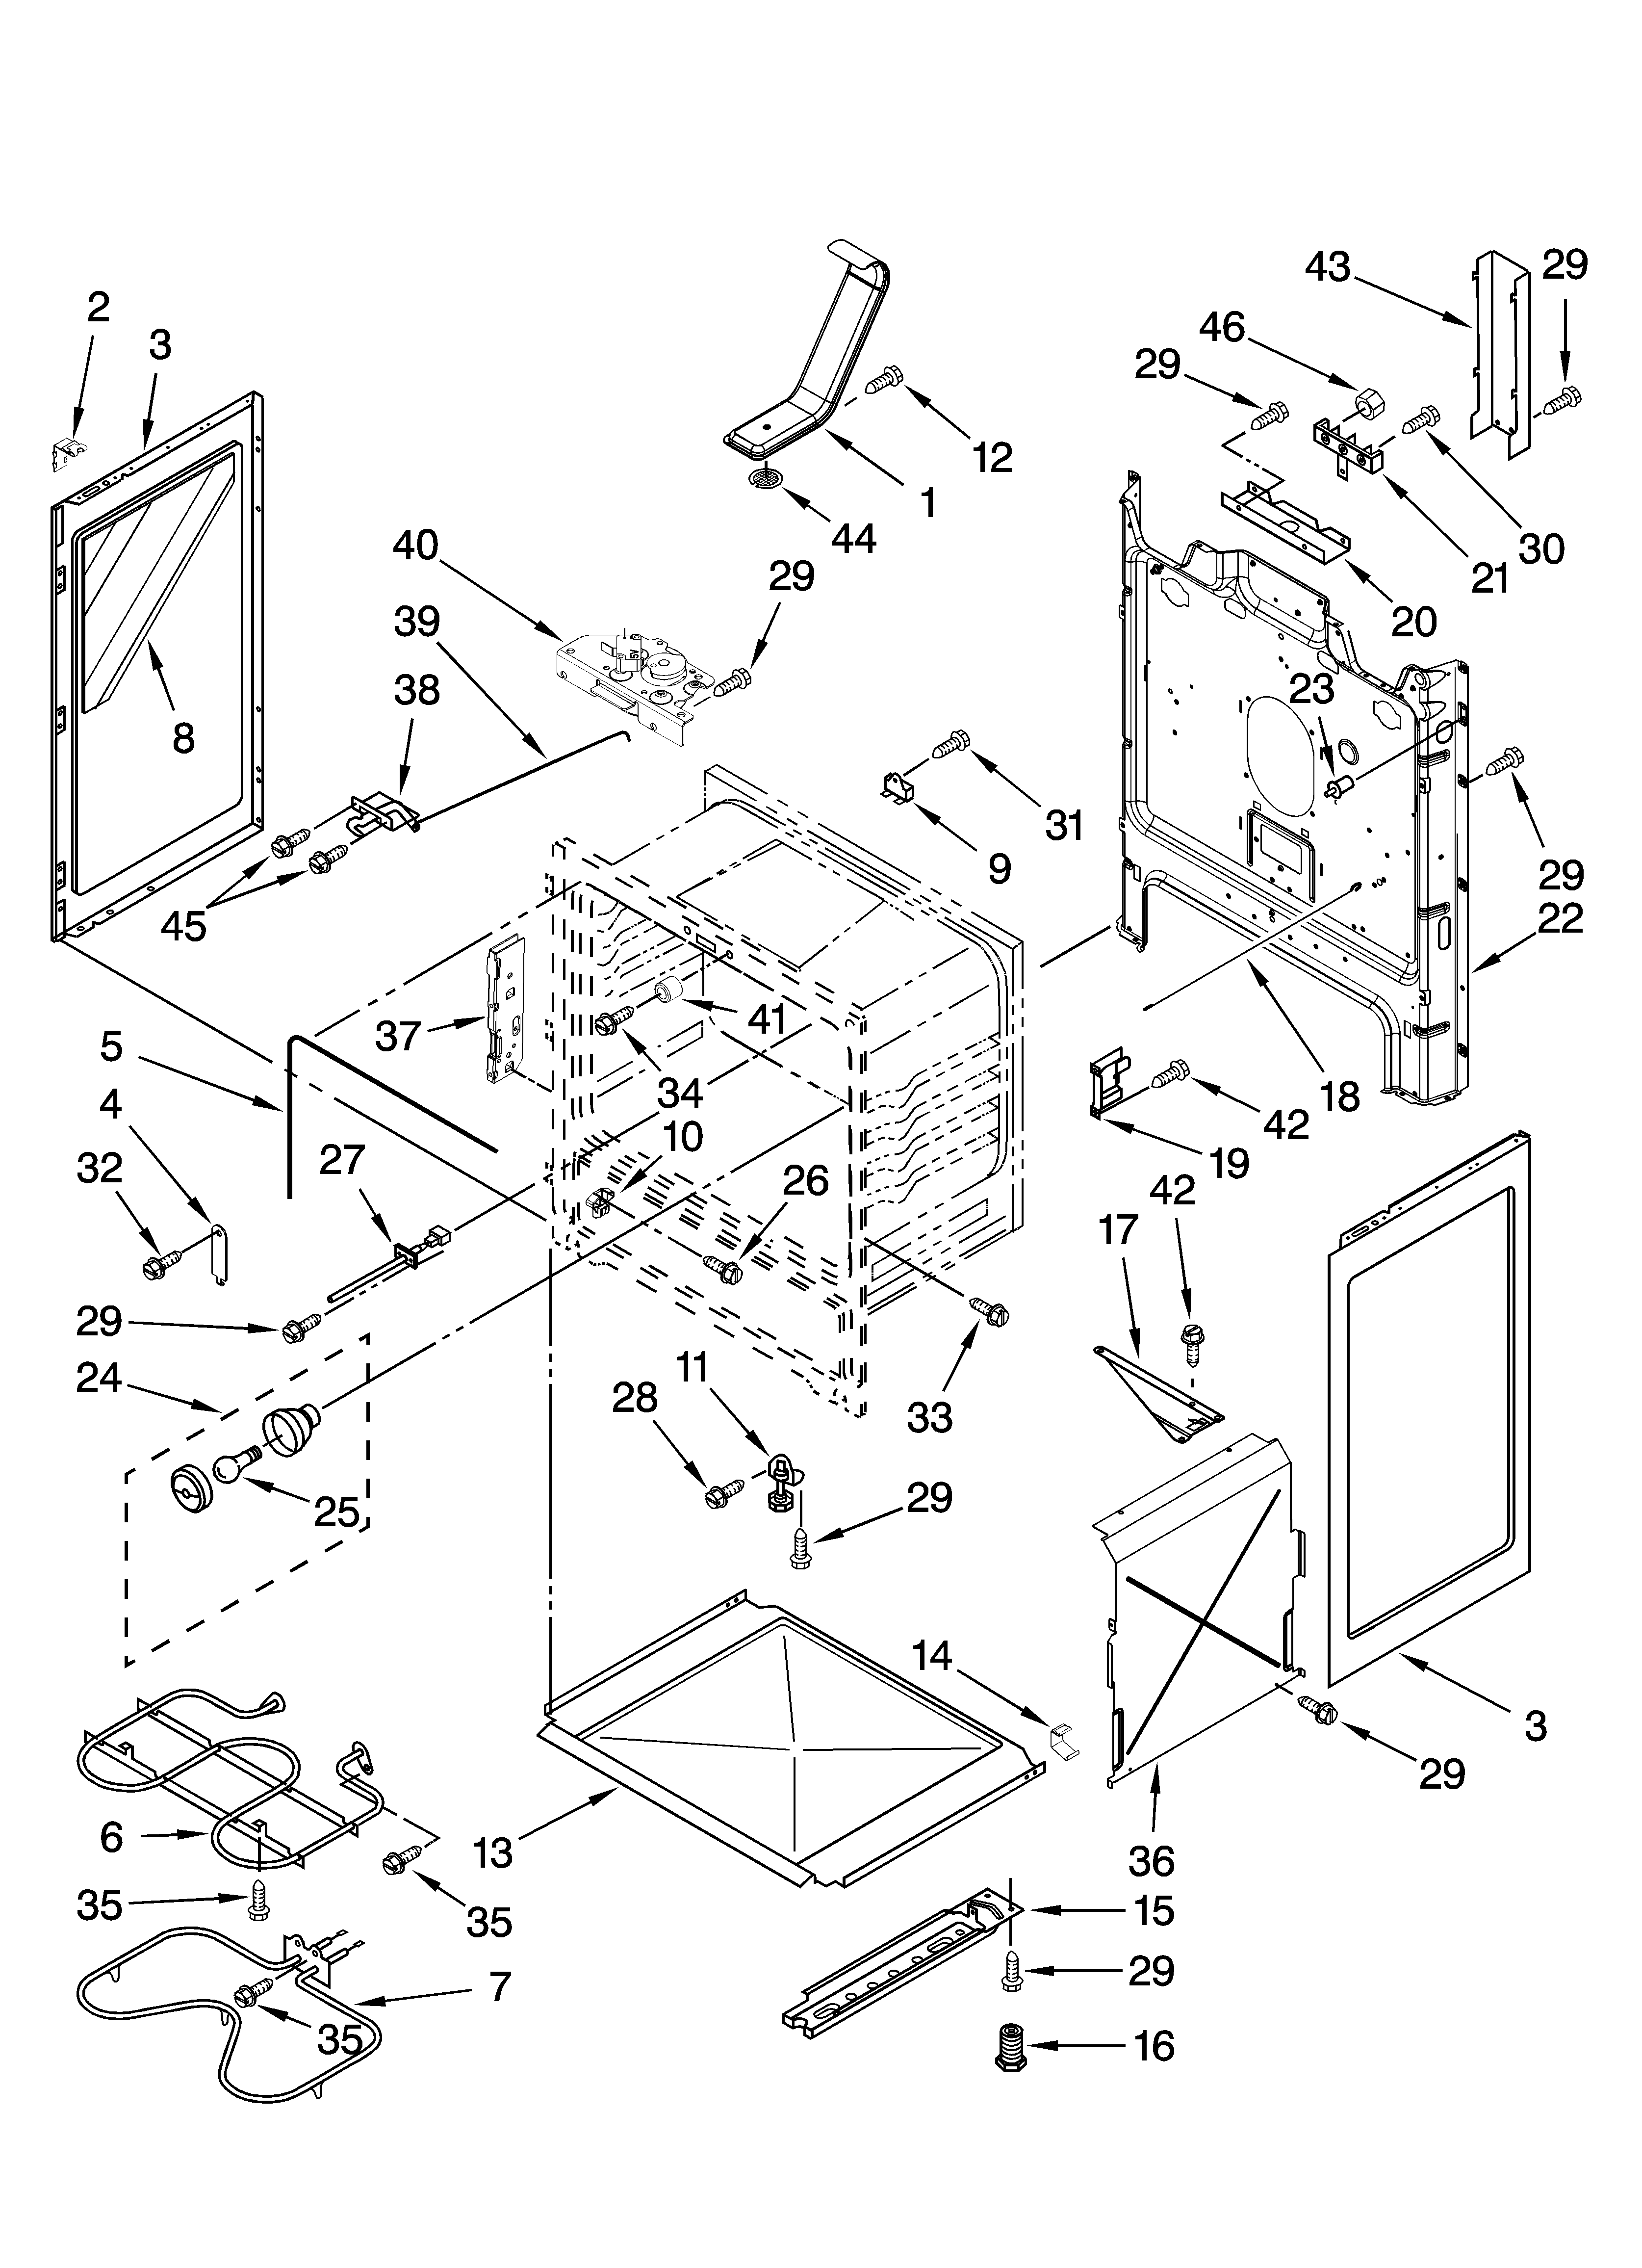 Amana AER5830VAW0 chassis parts diagram